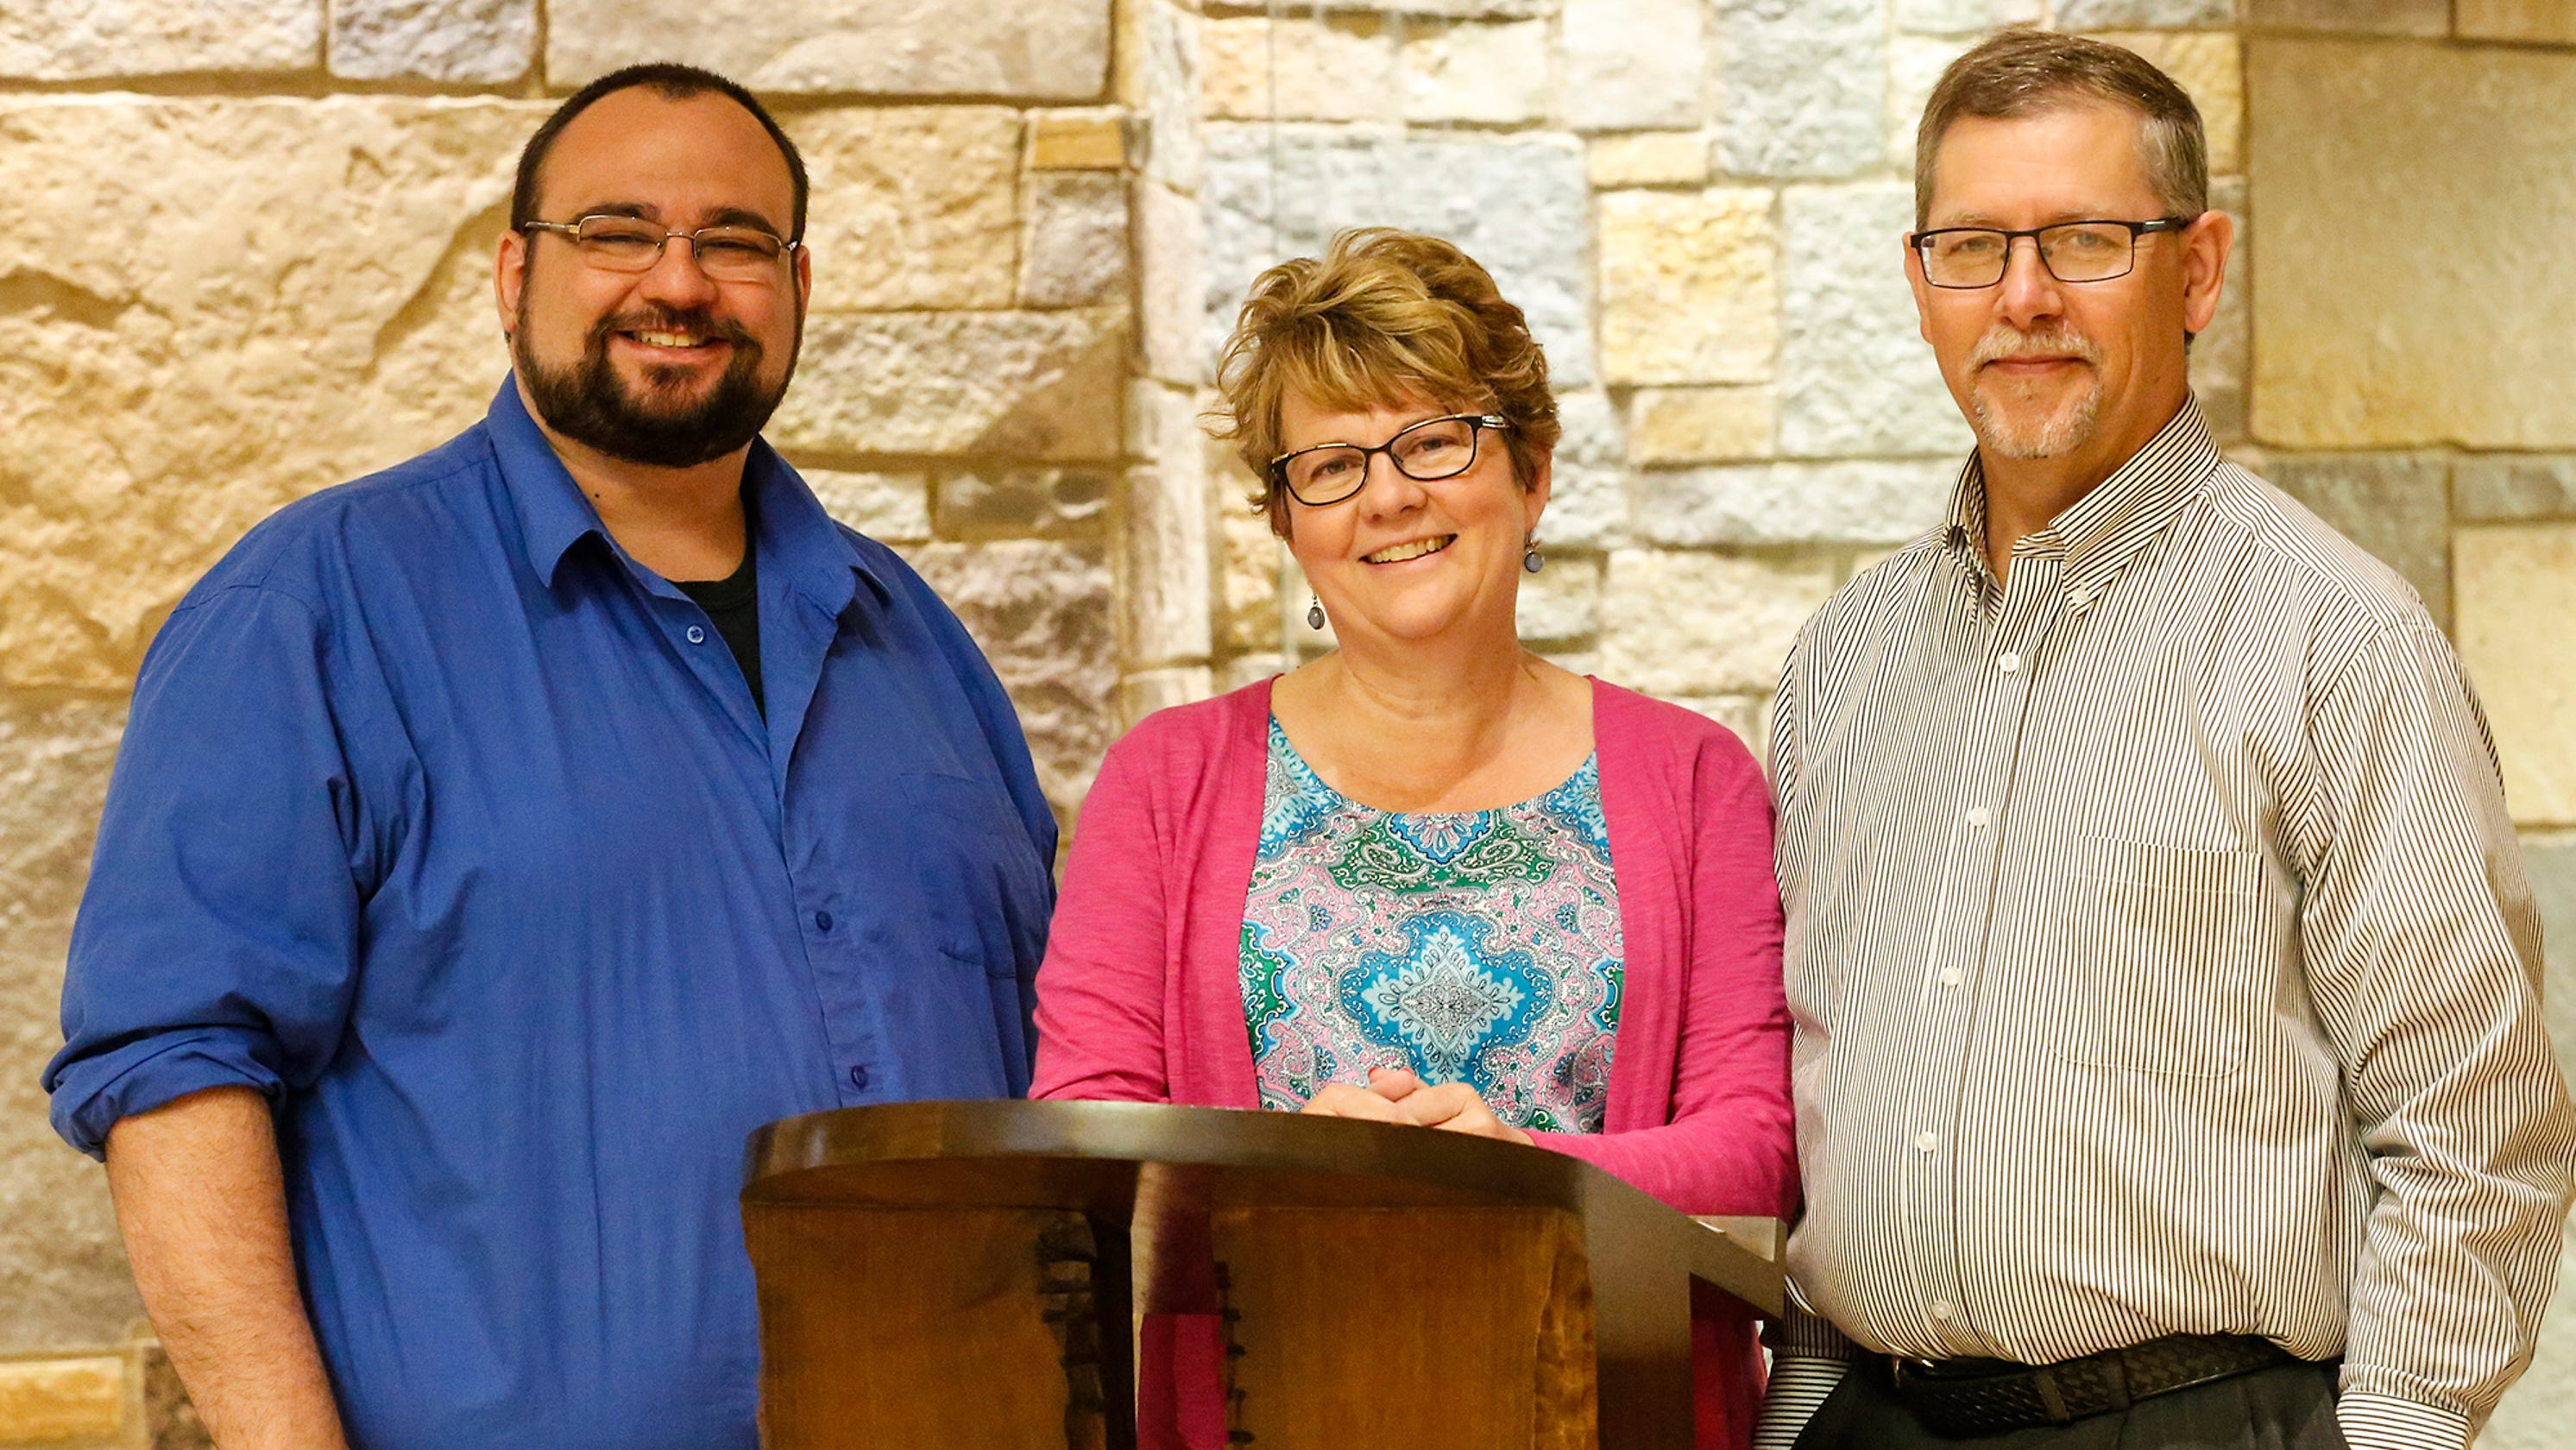 chaplains offering comfort in sacred spaces